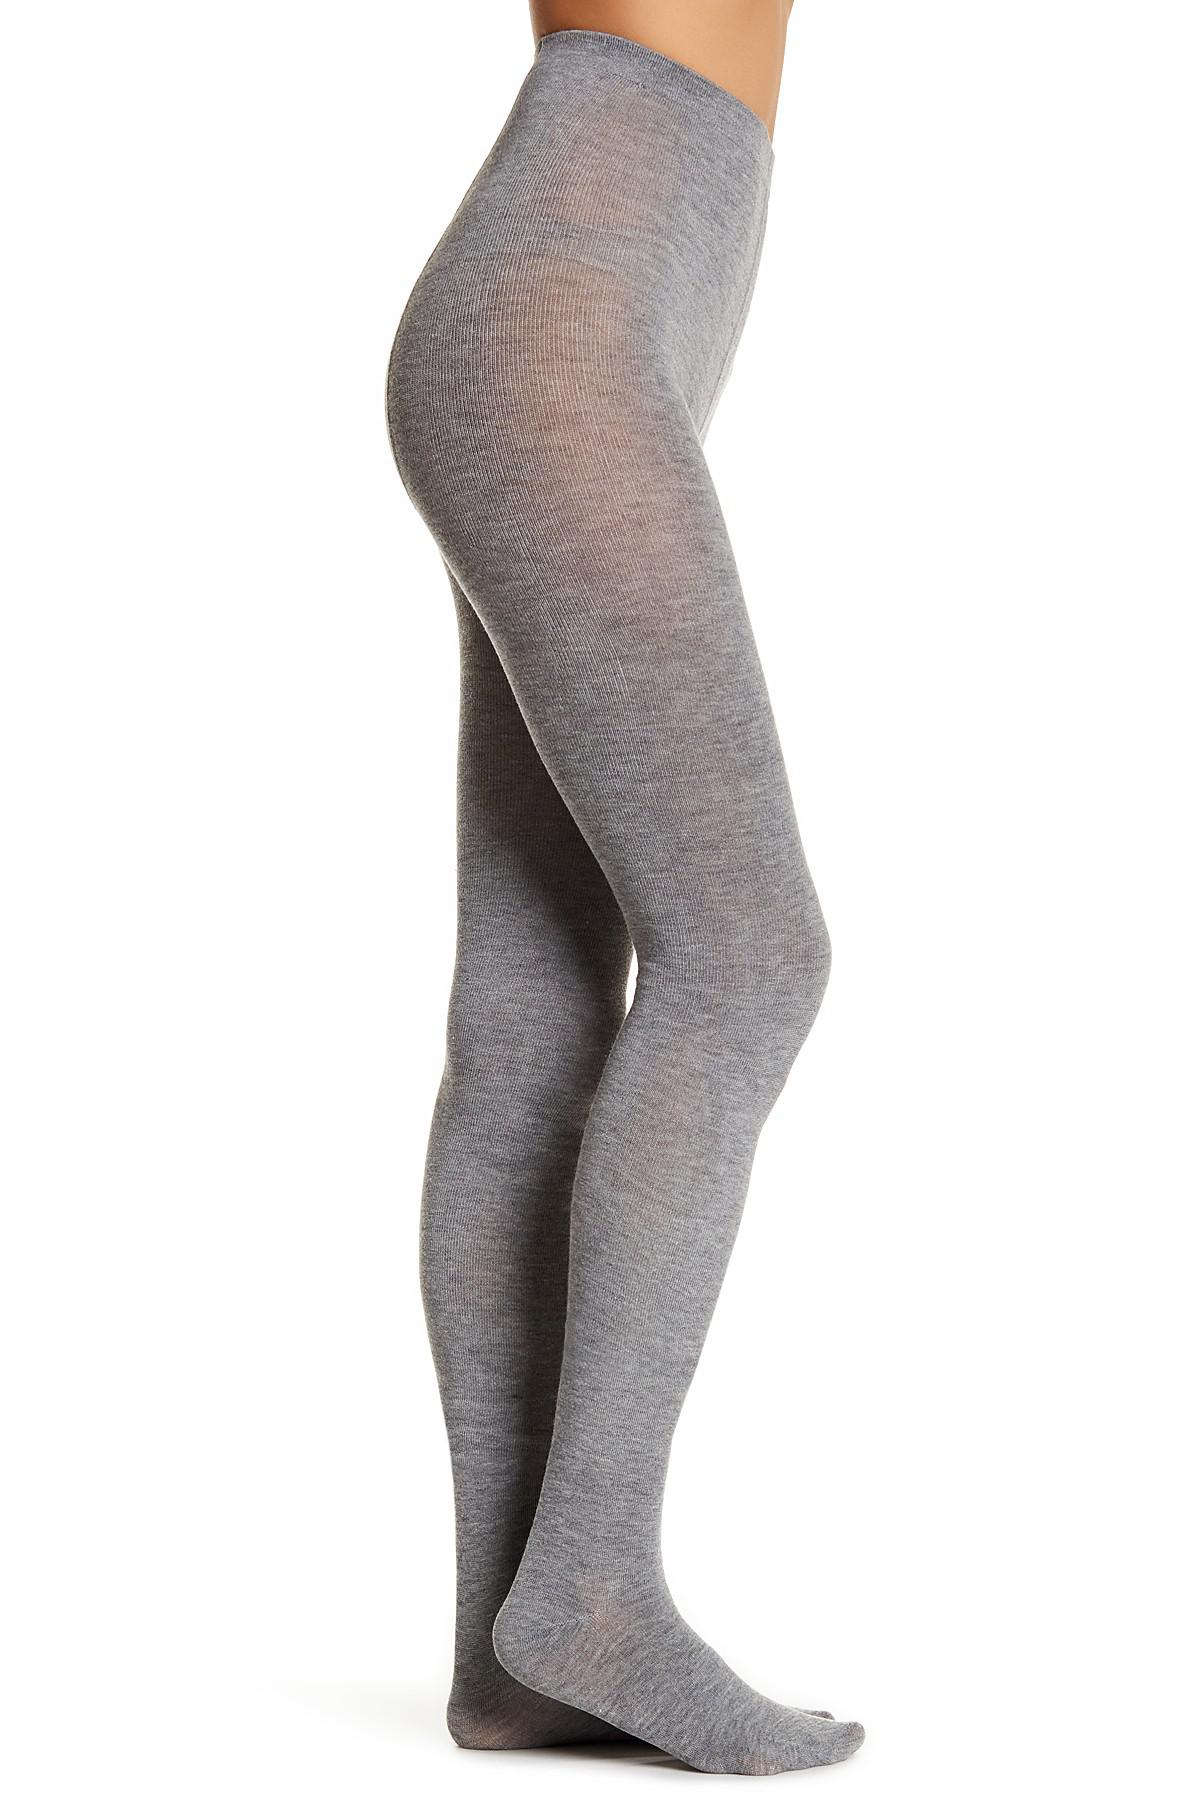 2a043e3eec13a Hue Flat-knit Sweater Tights - Pack Of 2 in Gray - Lyst